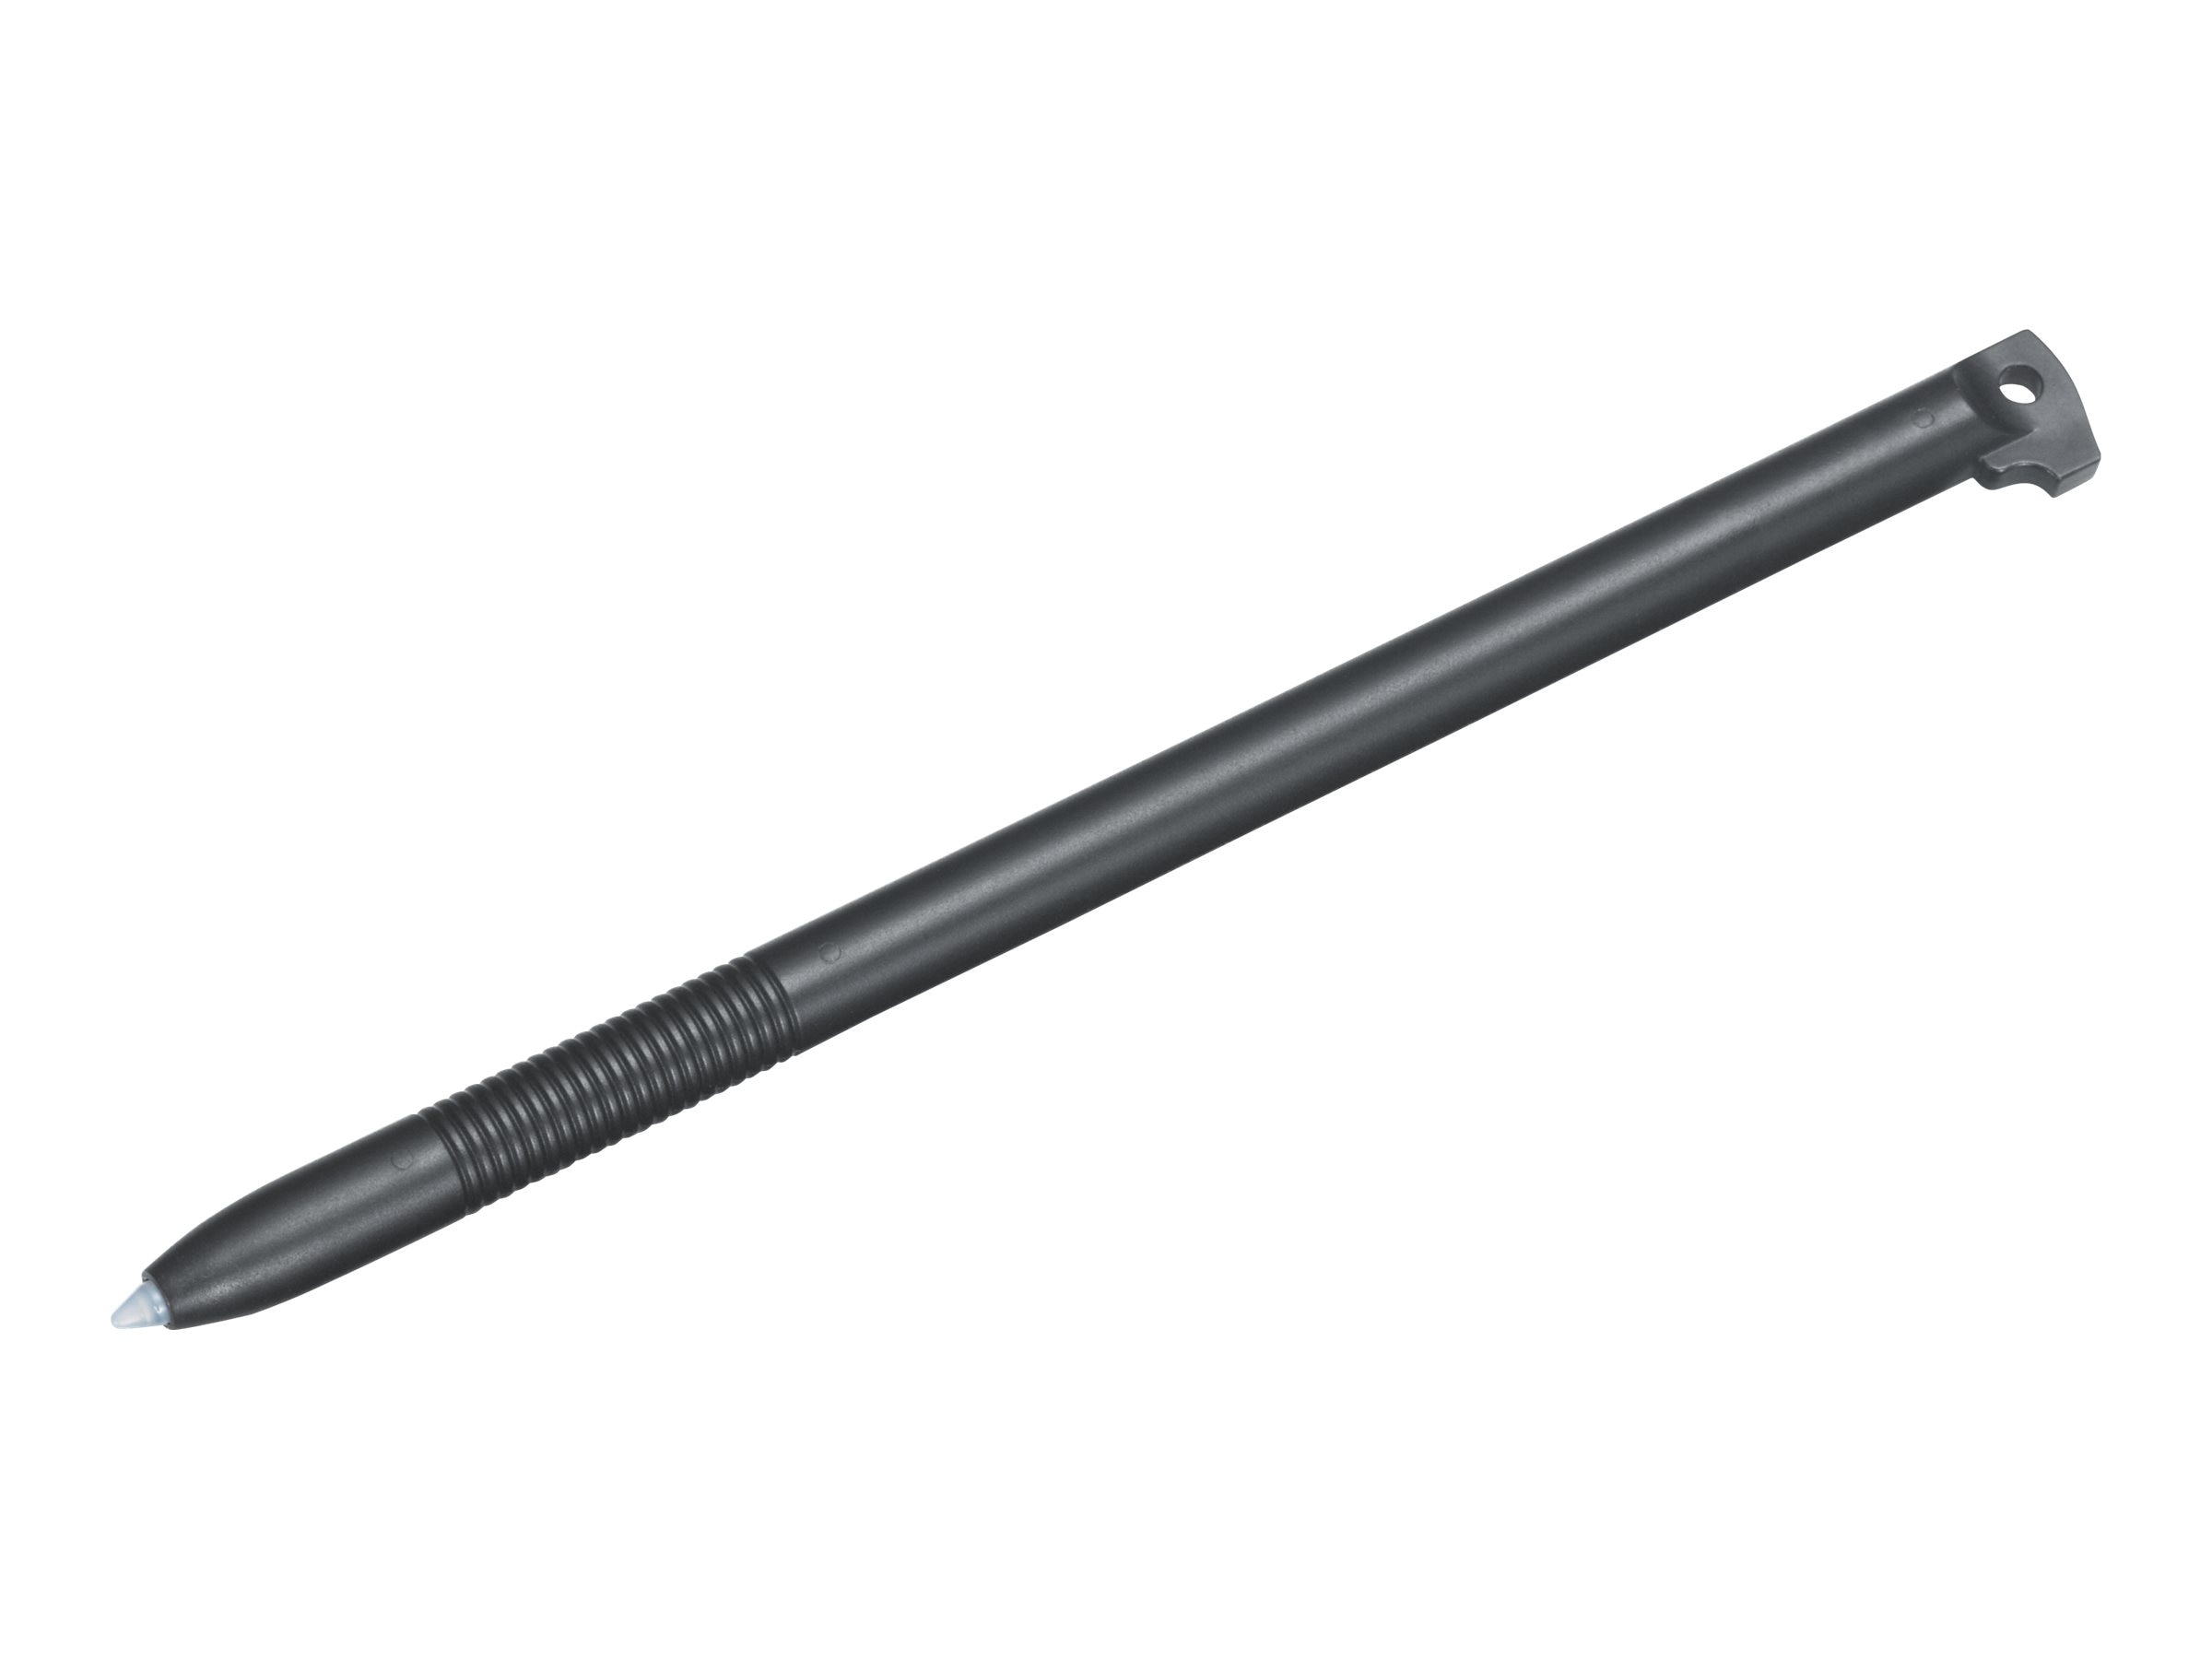 Panasonic Stylus for Toughbook 30 31